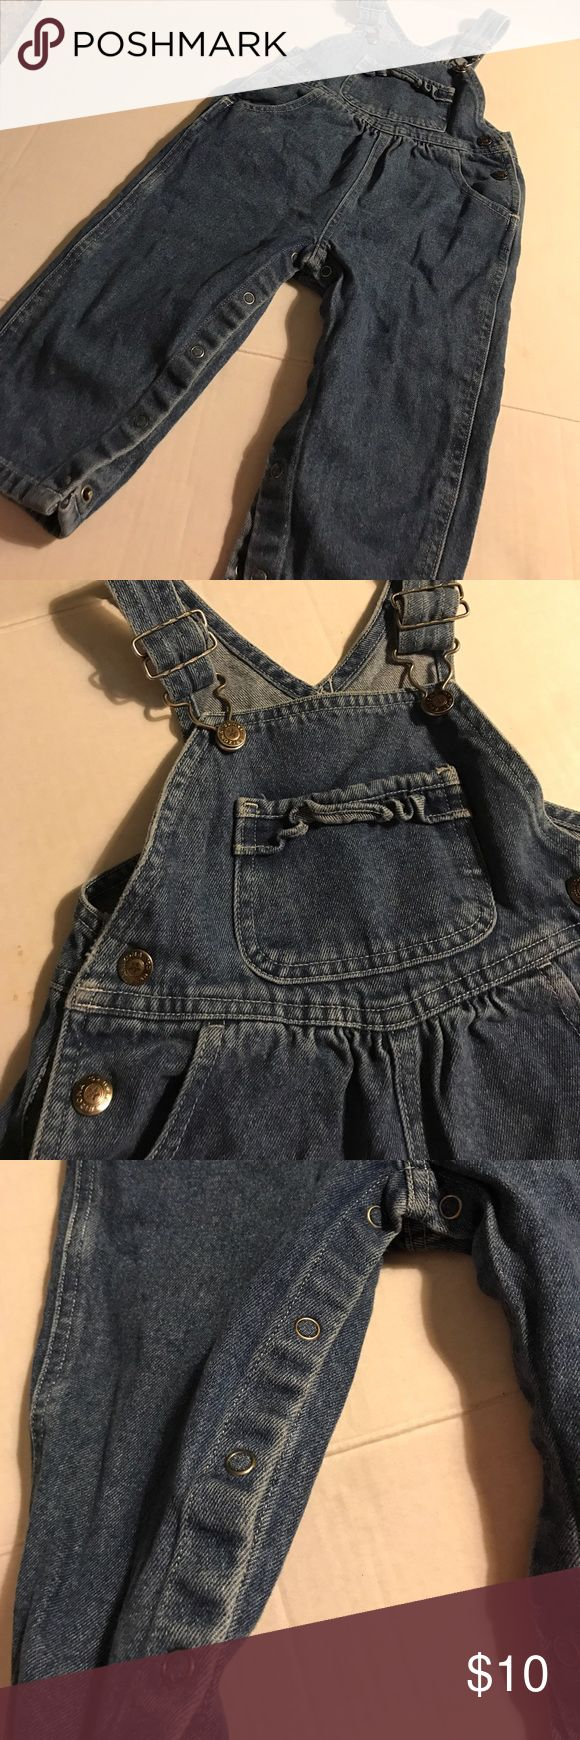 Overalls for Girls, Snaps on Inside leg, Size 2T Adjustable straps, front and back pockets. Ruffles denim Detail on front pocket and back pockets. Arizona Jean Company Bottoms Overalls